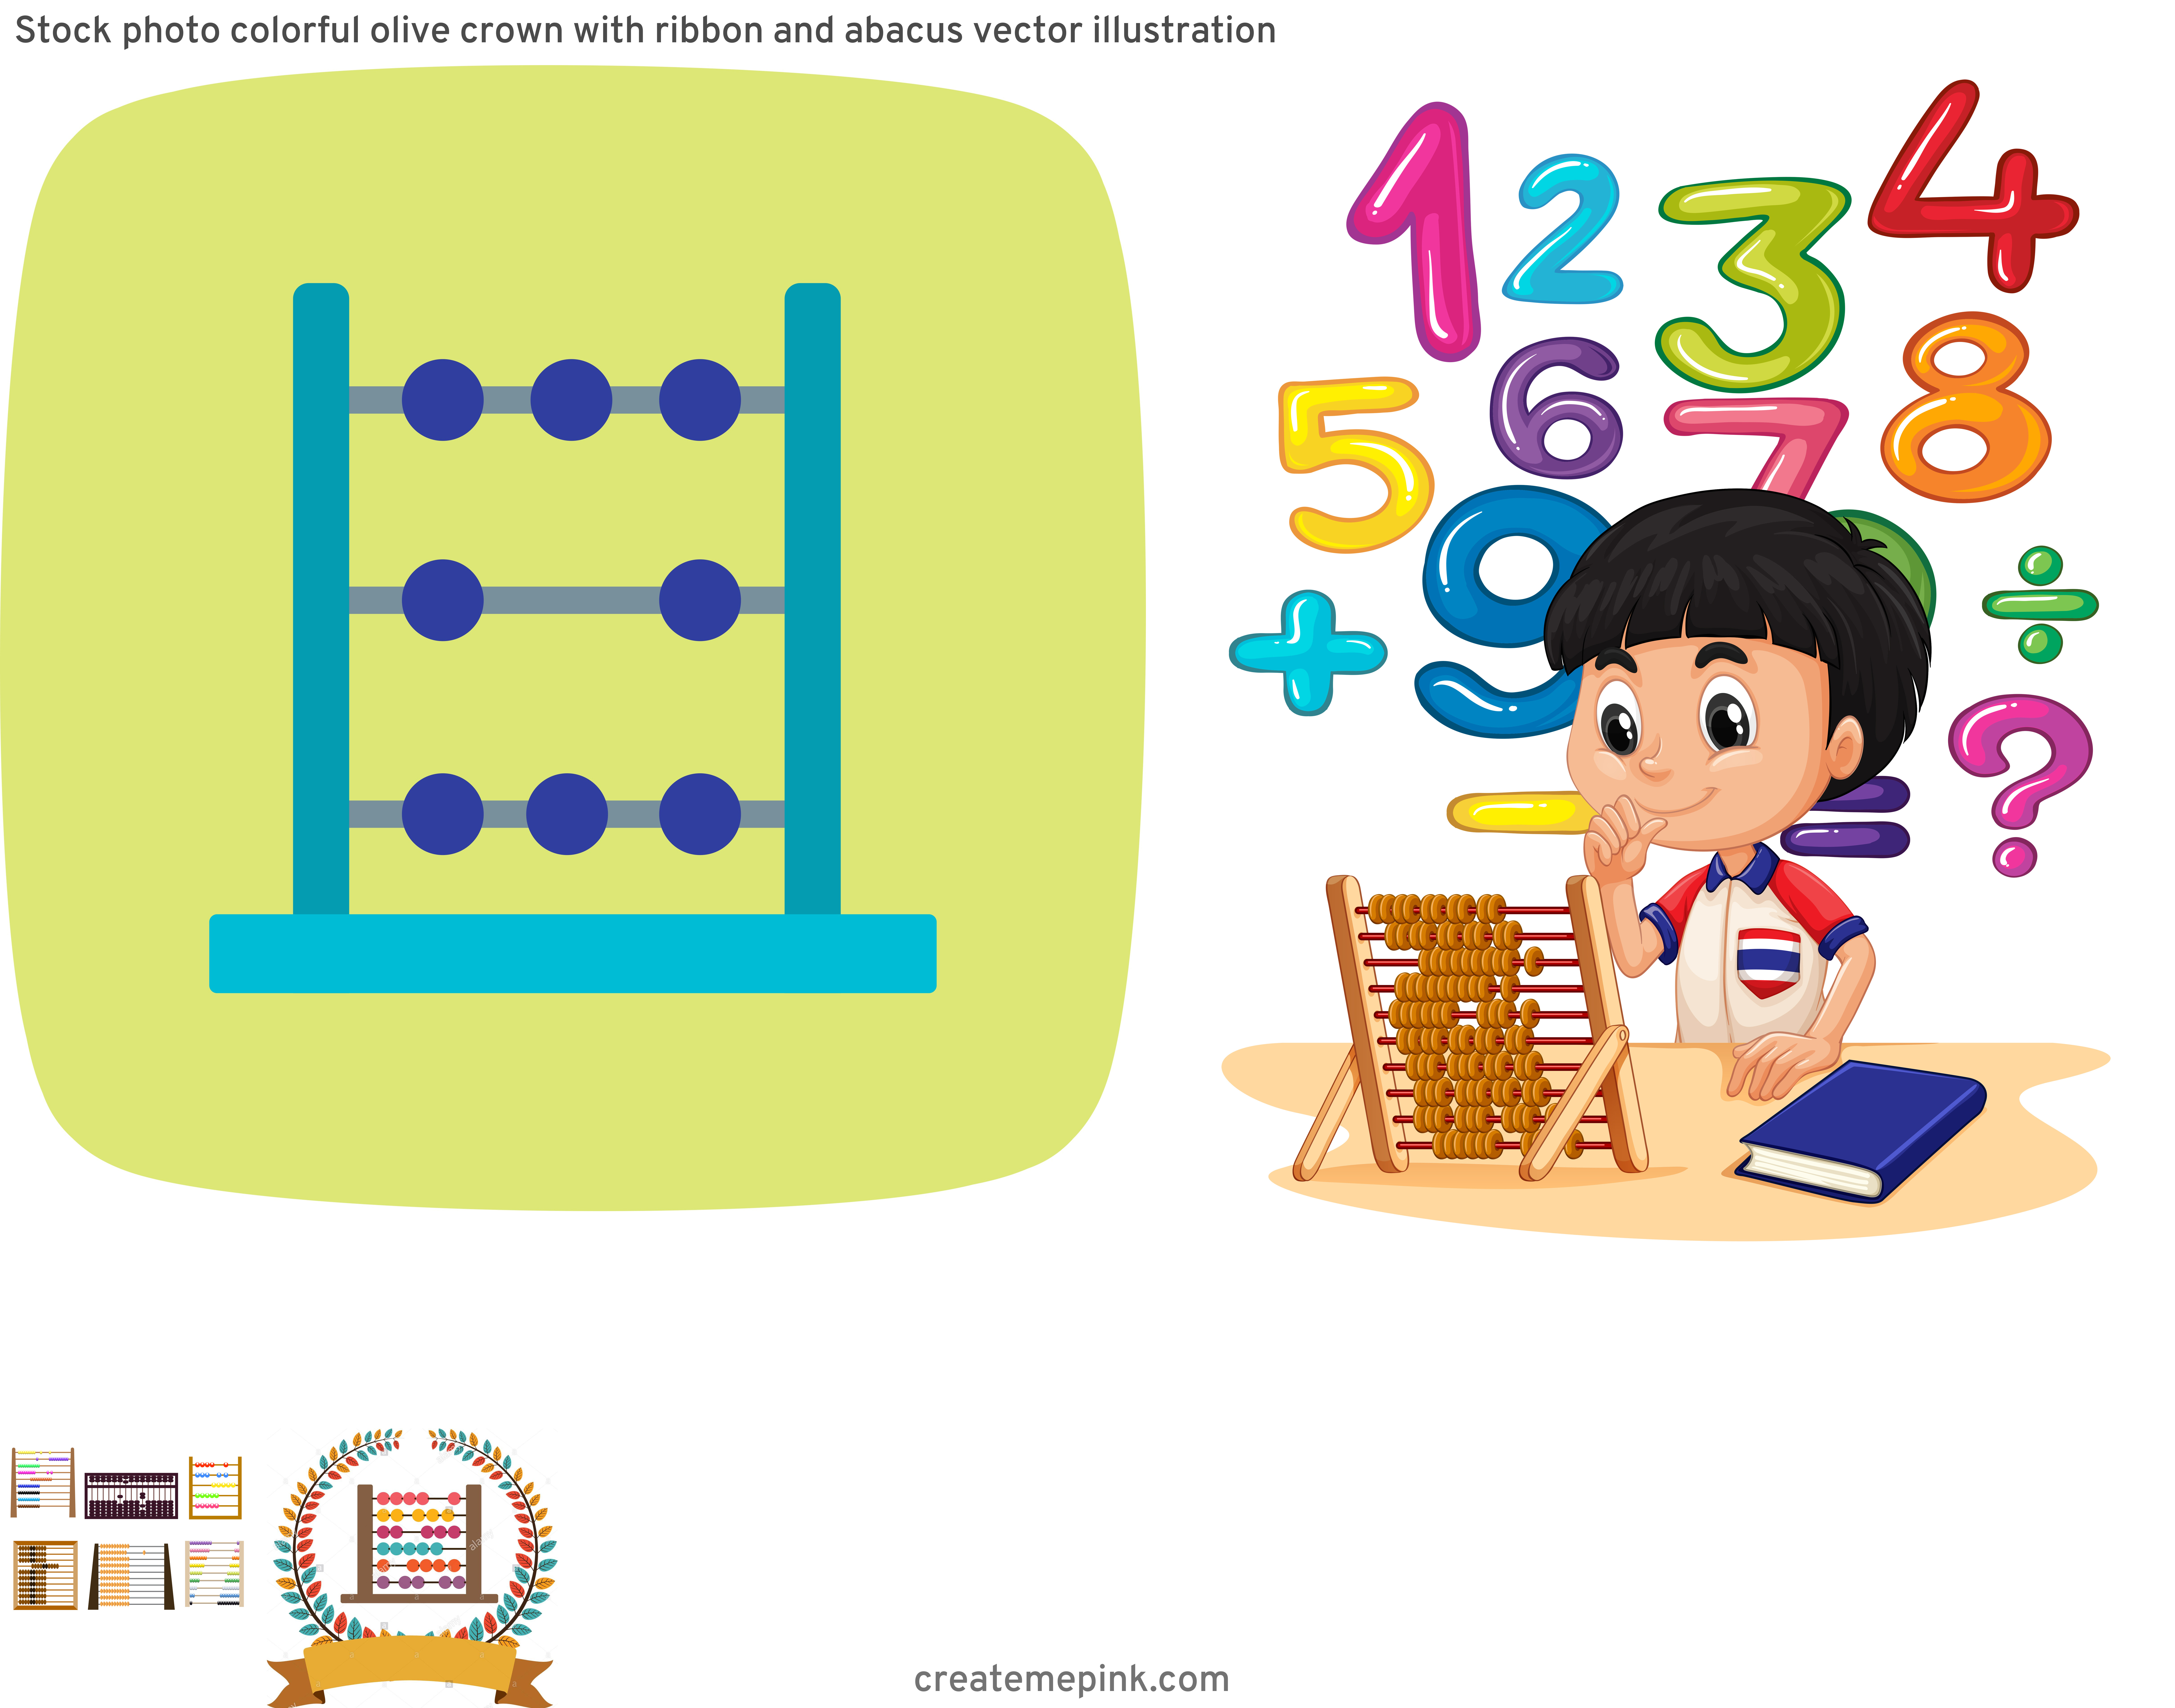 Abacus Vector Art: Stock Photo Colorful Olive Crown With Ribbon And Abacus Vector Illustration